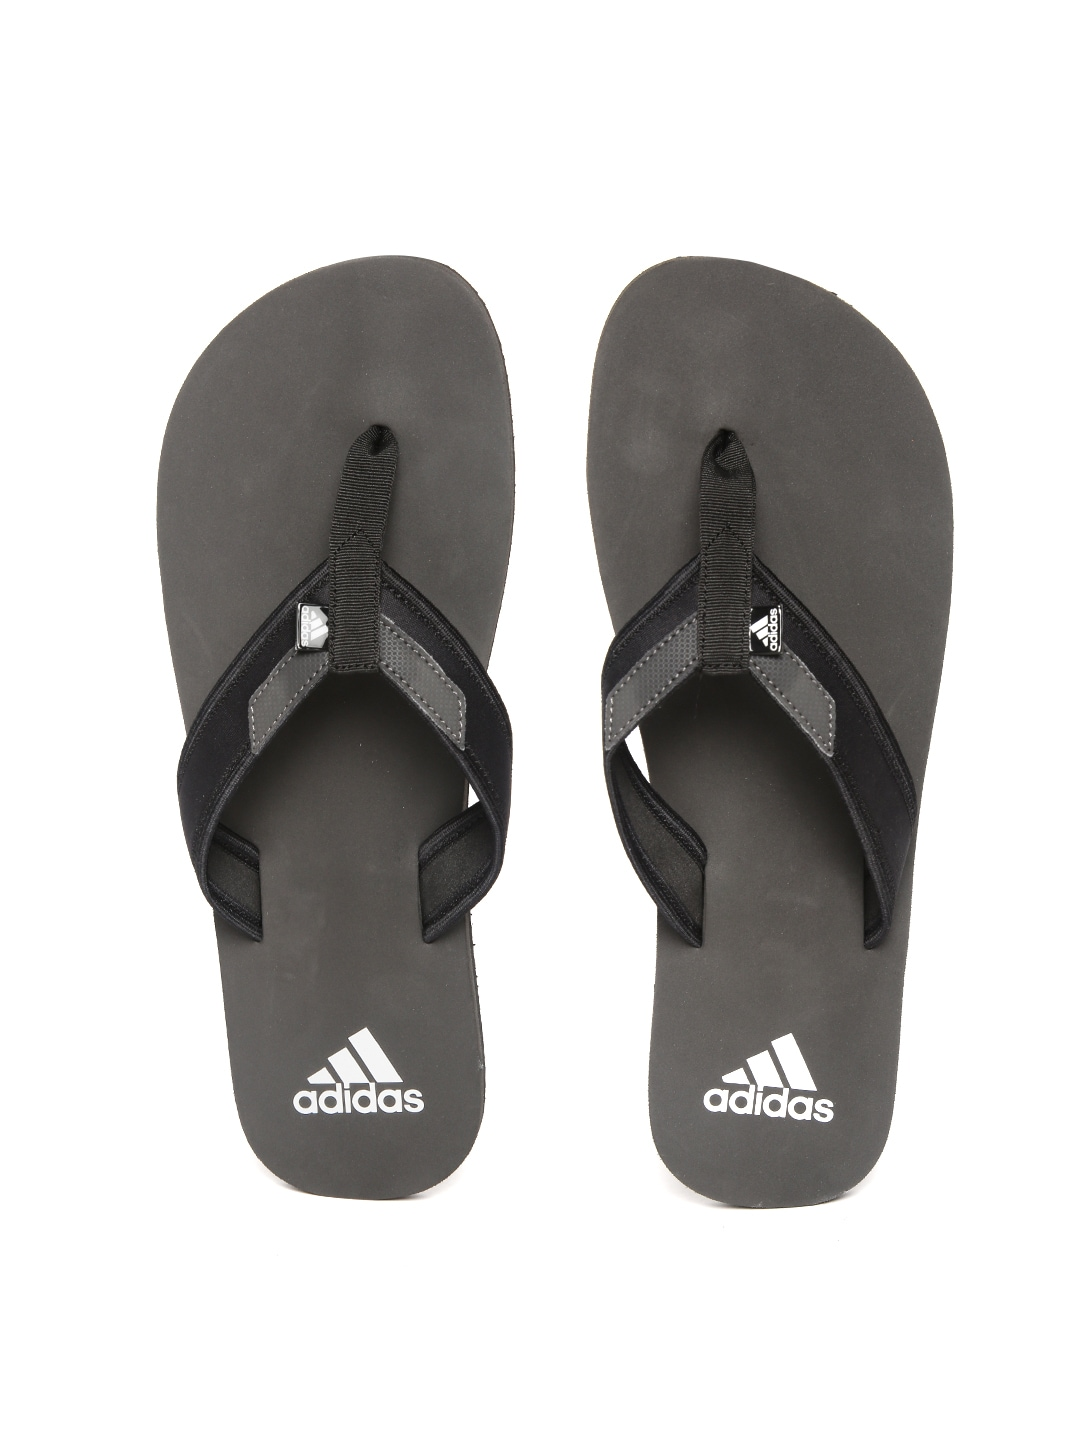 ef98f40df01530 Adidas Slippers - Buy Adidas Slipper   Flip Flops Online India